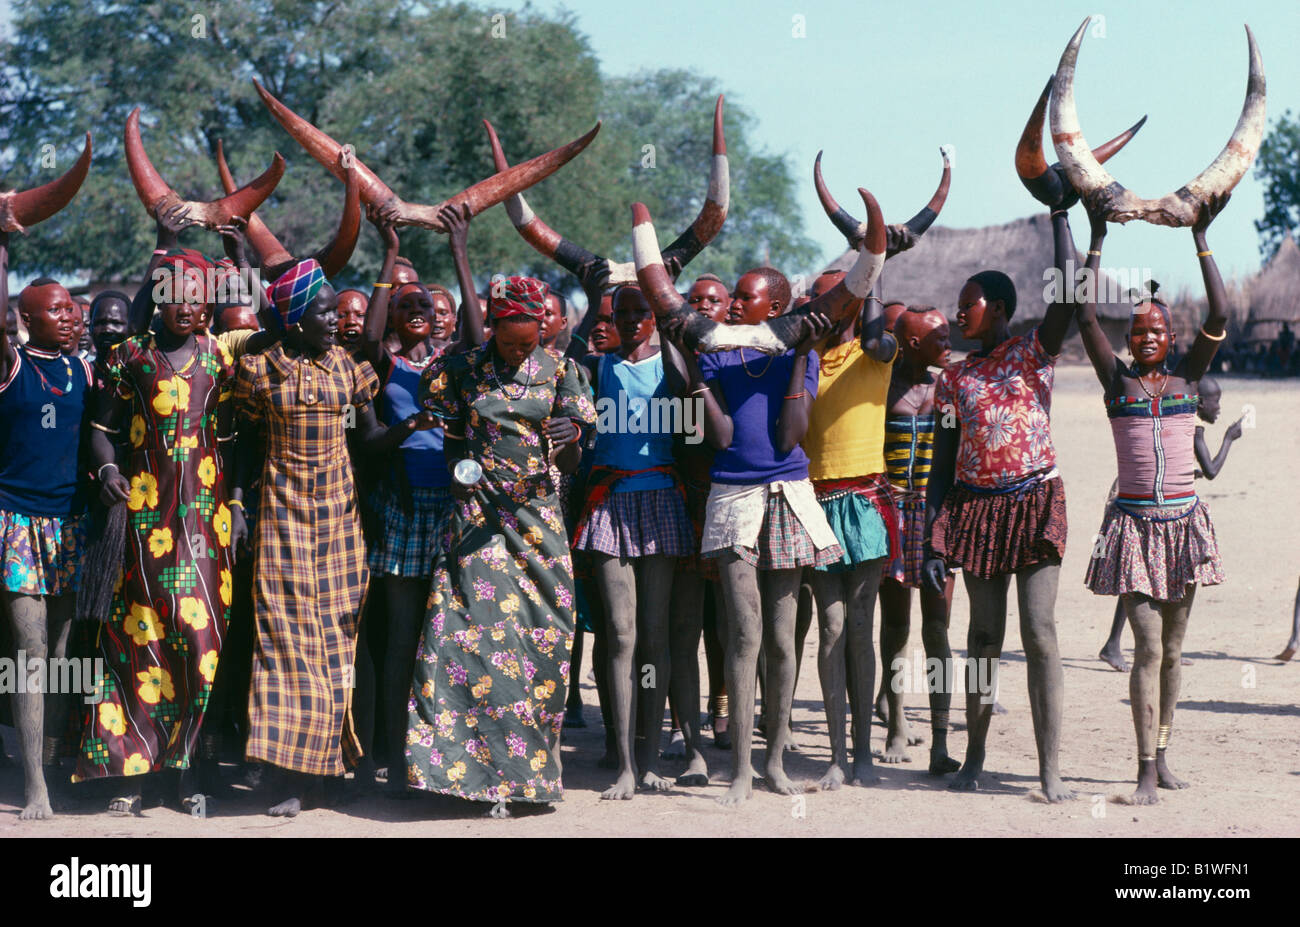 SUDAN North Africa Tribal Peoples Dinka cattle festival or Toich Women holding painted bulls horns in the air - Stock Image